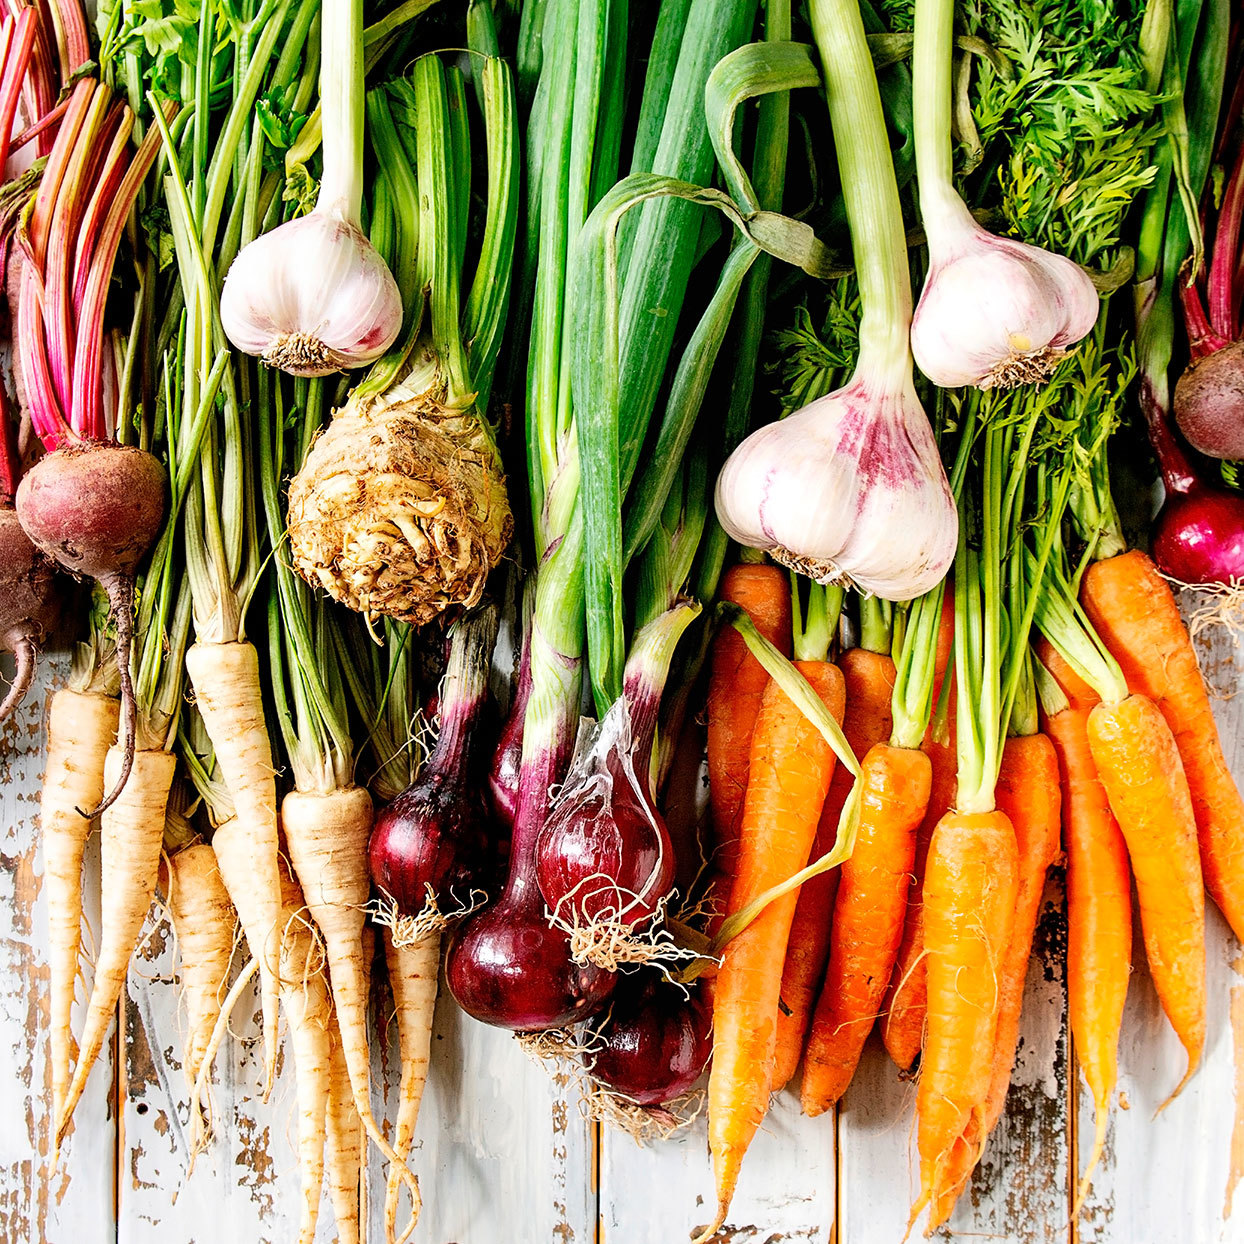 Stock Your Kitchen with These 14 Long-Lasting Fresh Fruits and Vegetables